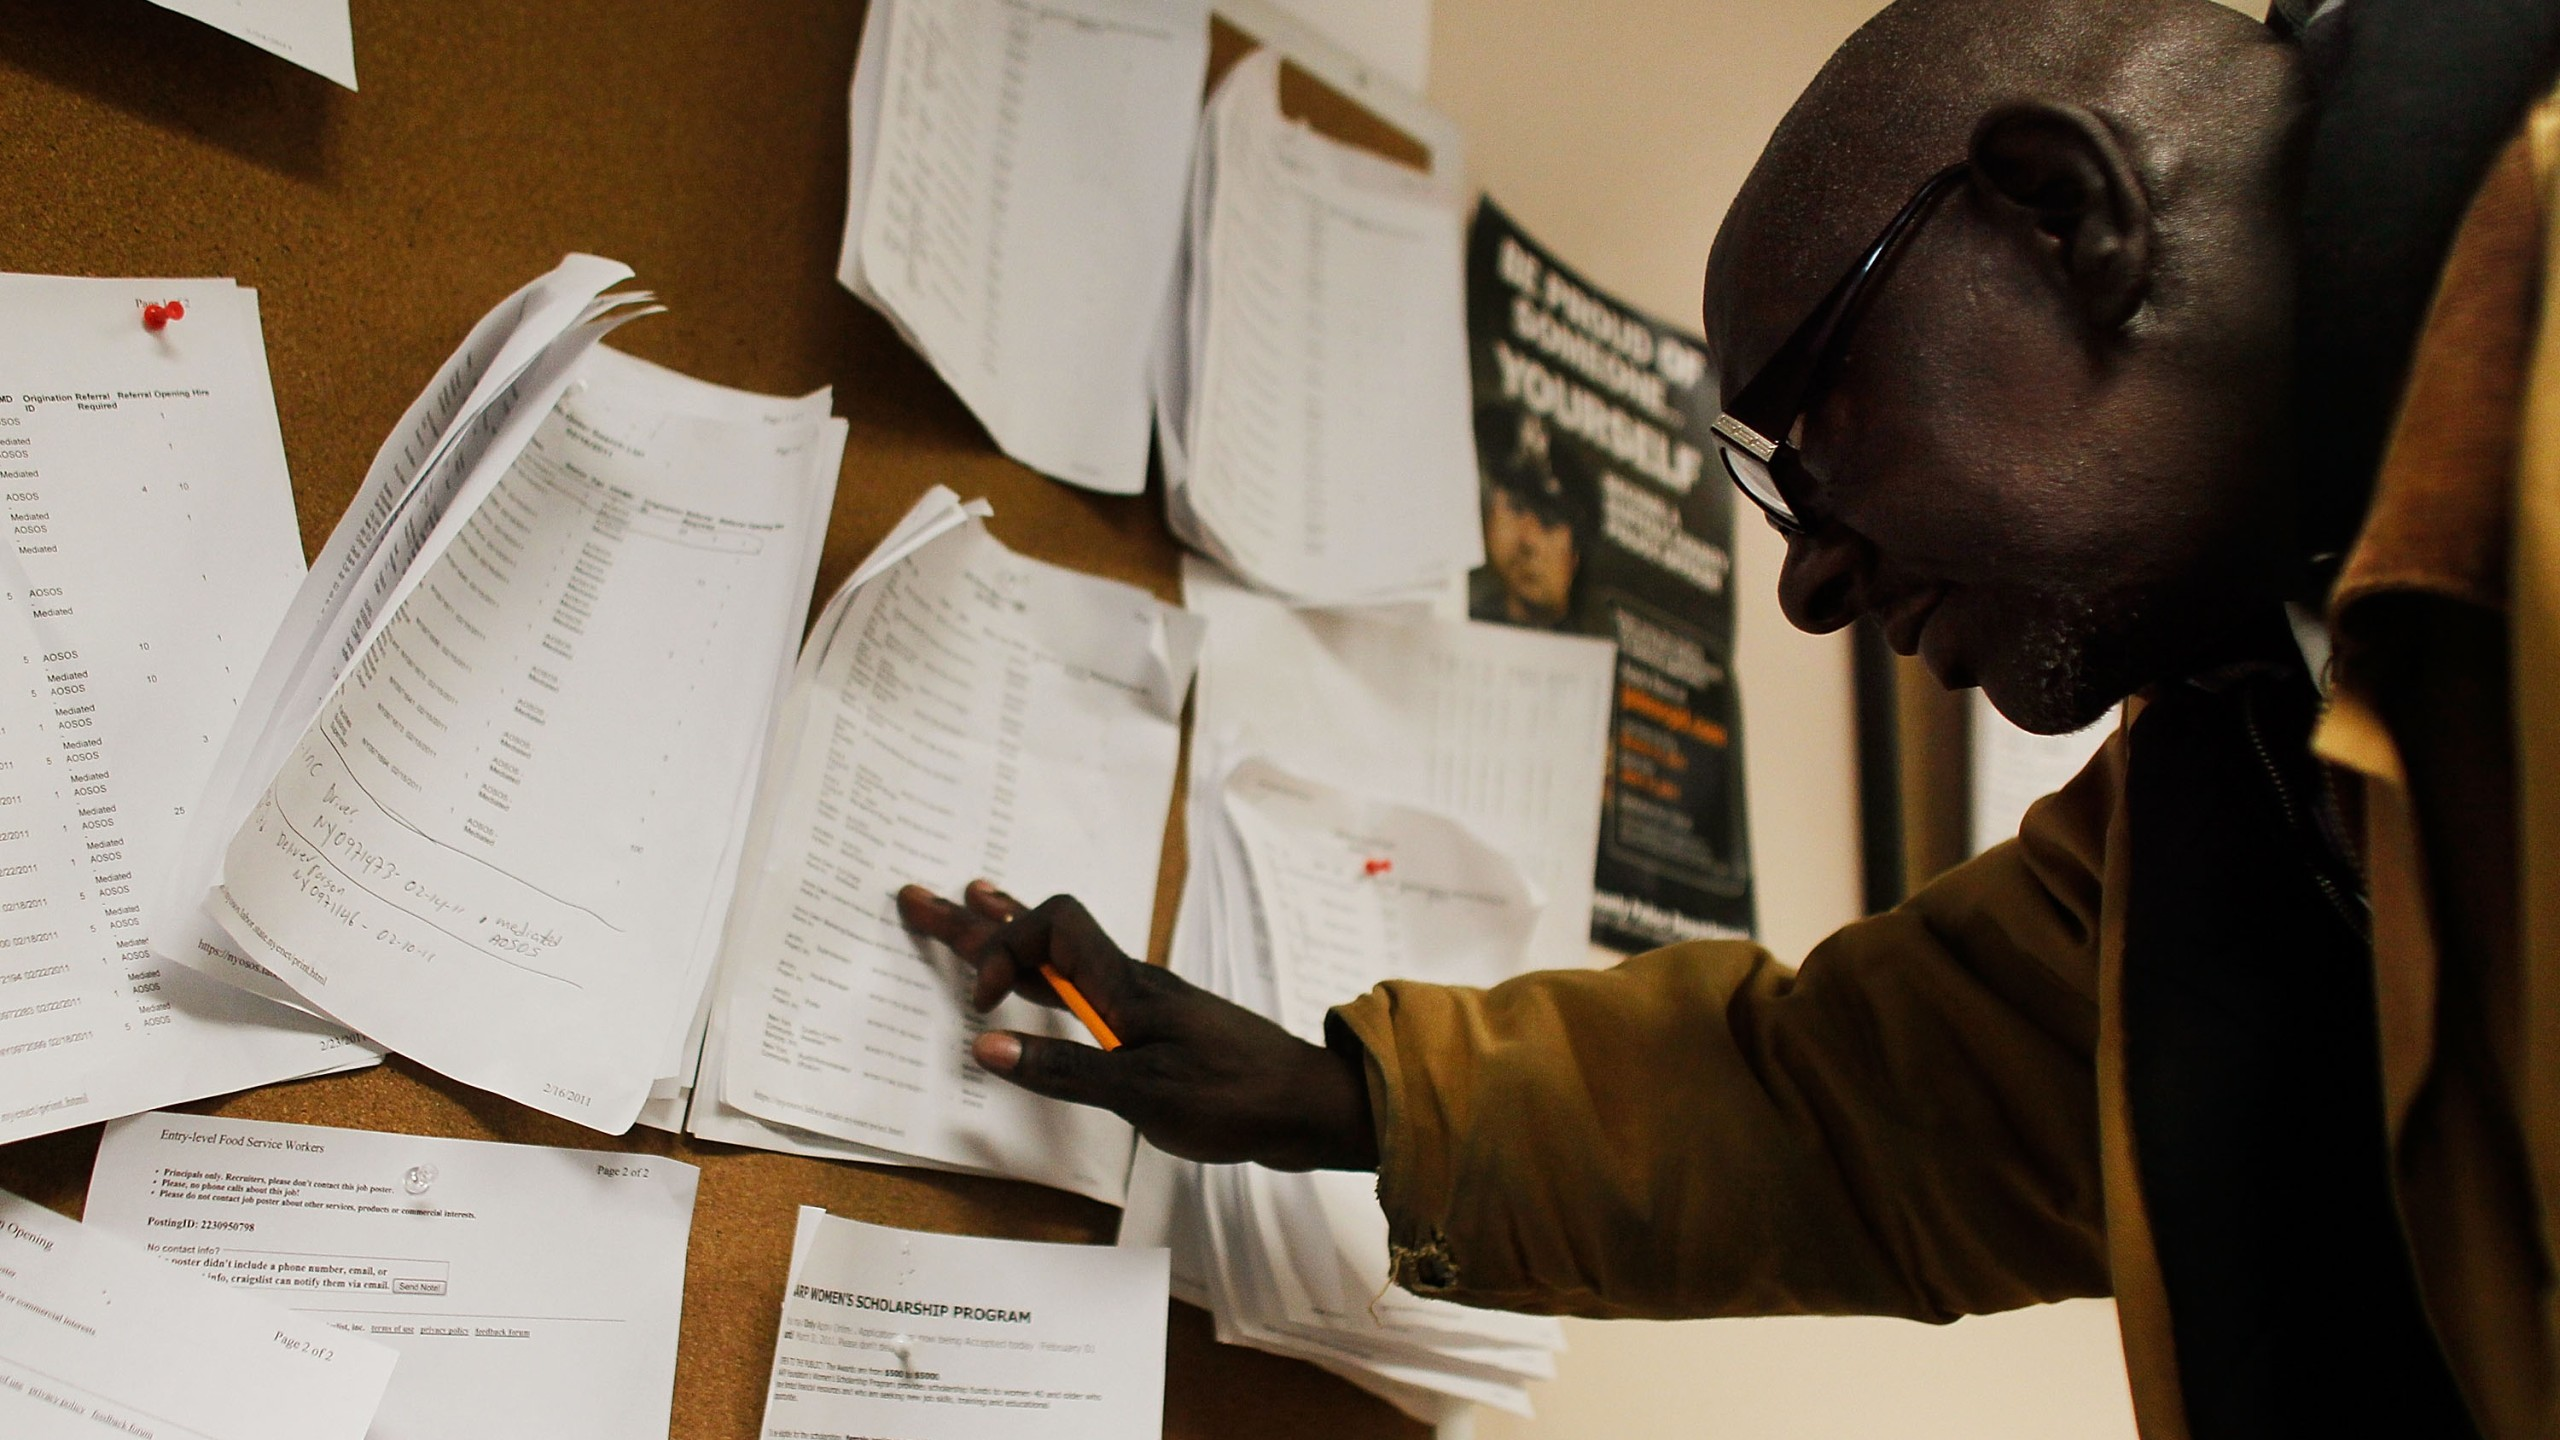 An unemployed man looks over job listings on a board at a New York State Department of Labor Employment Services office on March 3, 2011. (Credit: Chris Hondros/Getty Images)